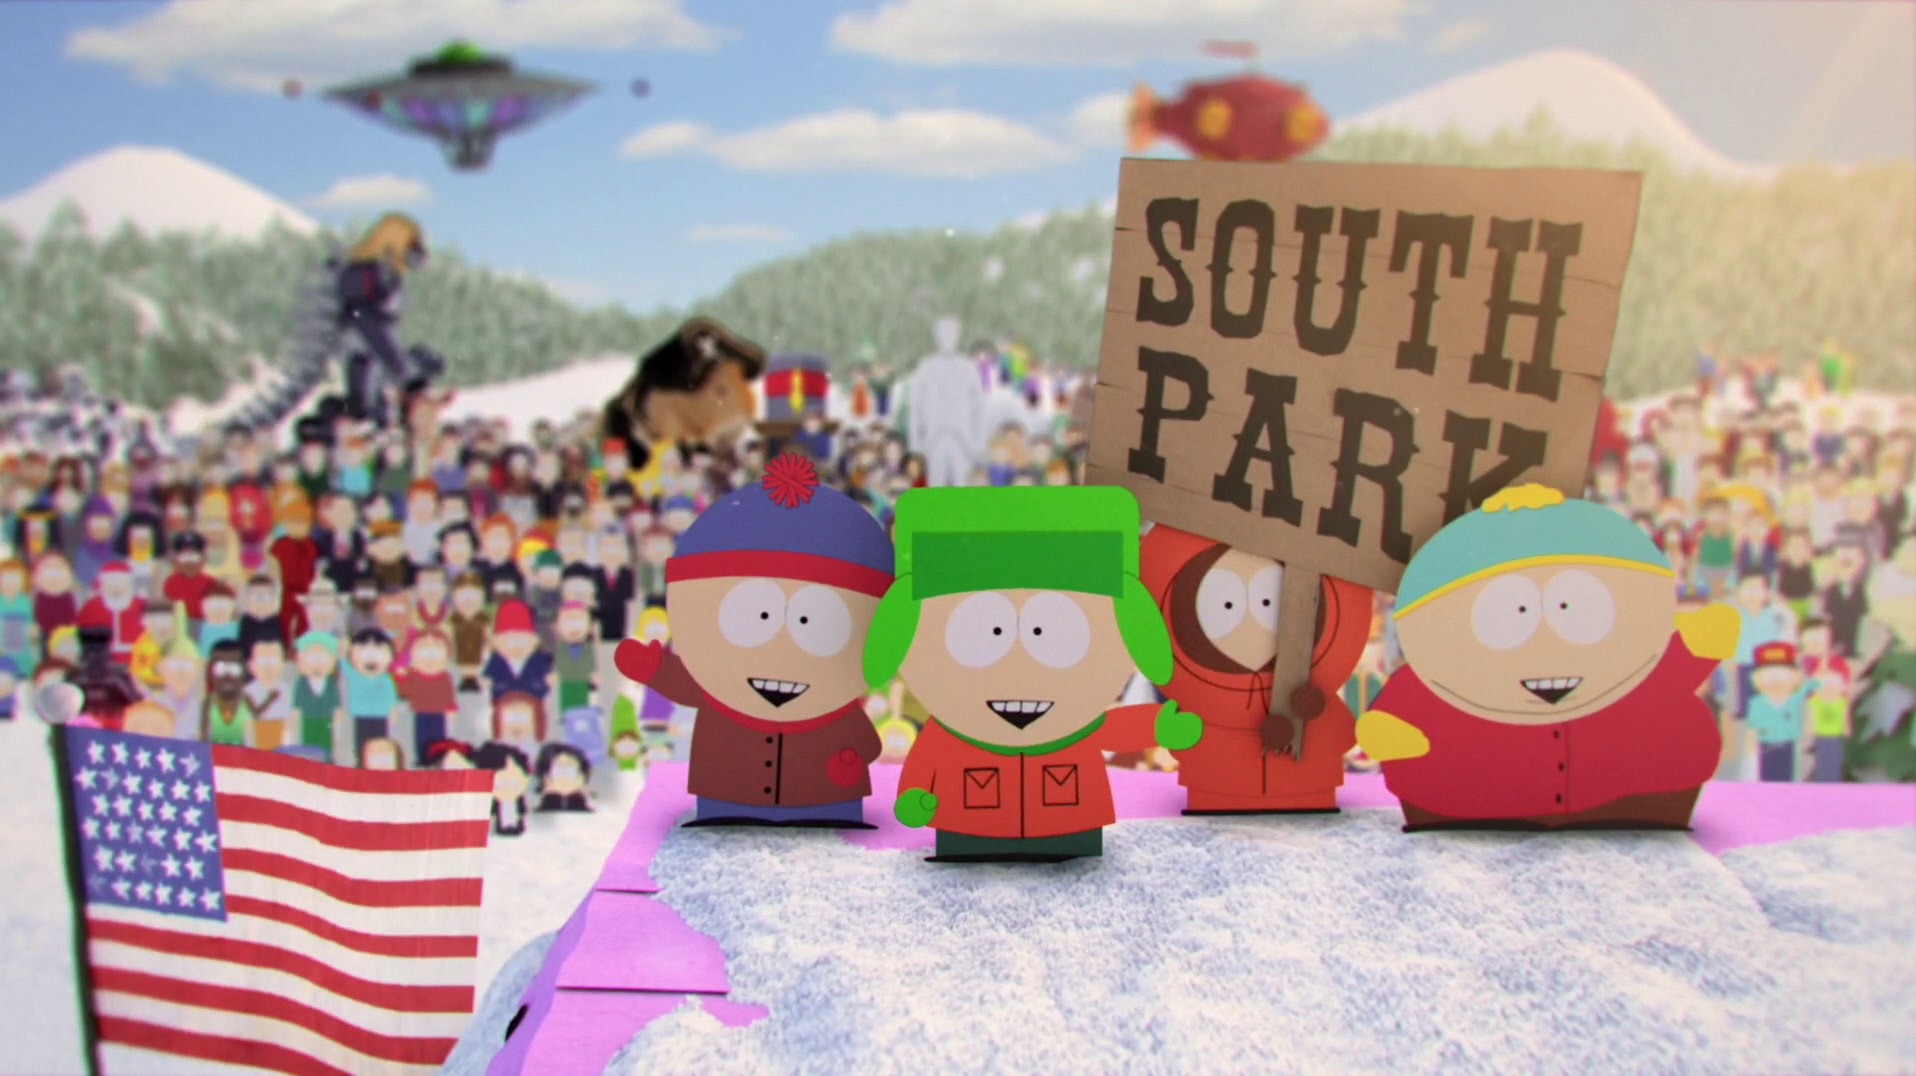 http://upload.wikimedia.org/wikipedia/it/2/2b/South_park.JPG